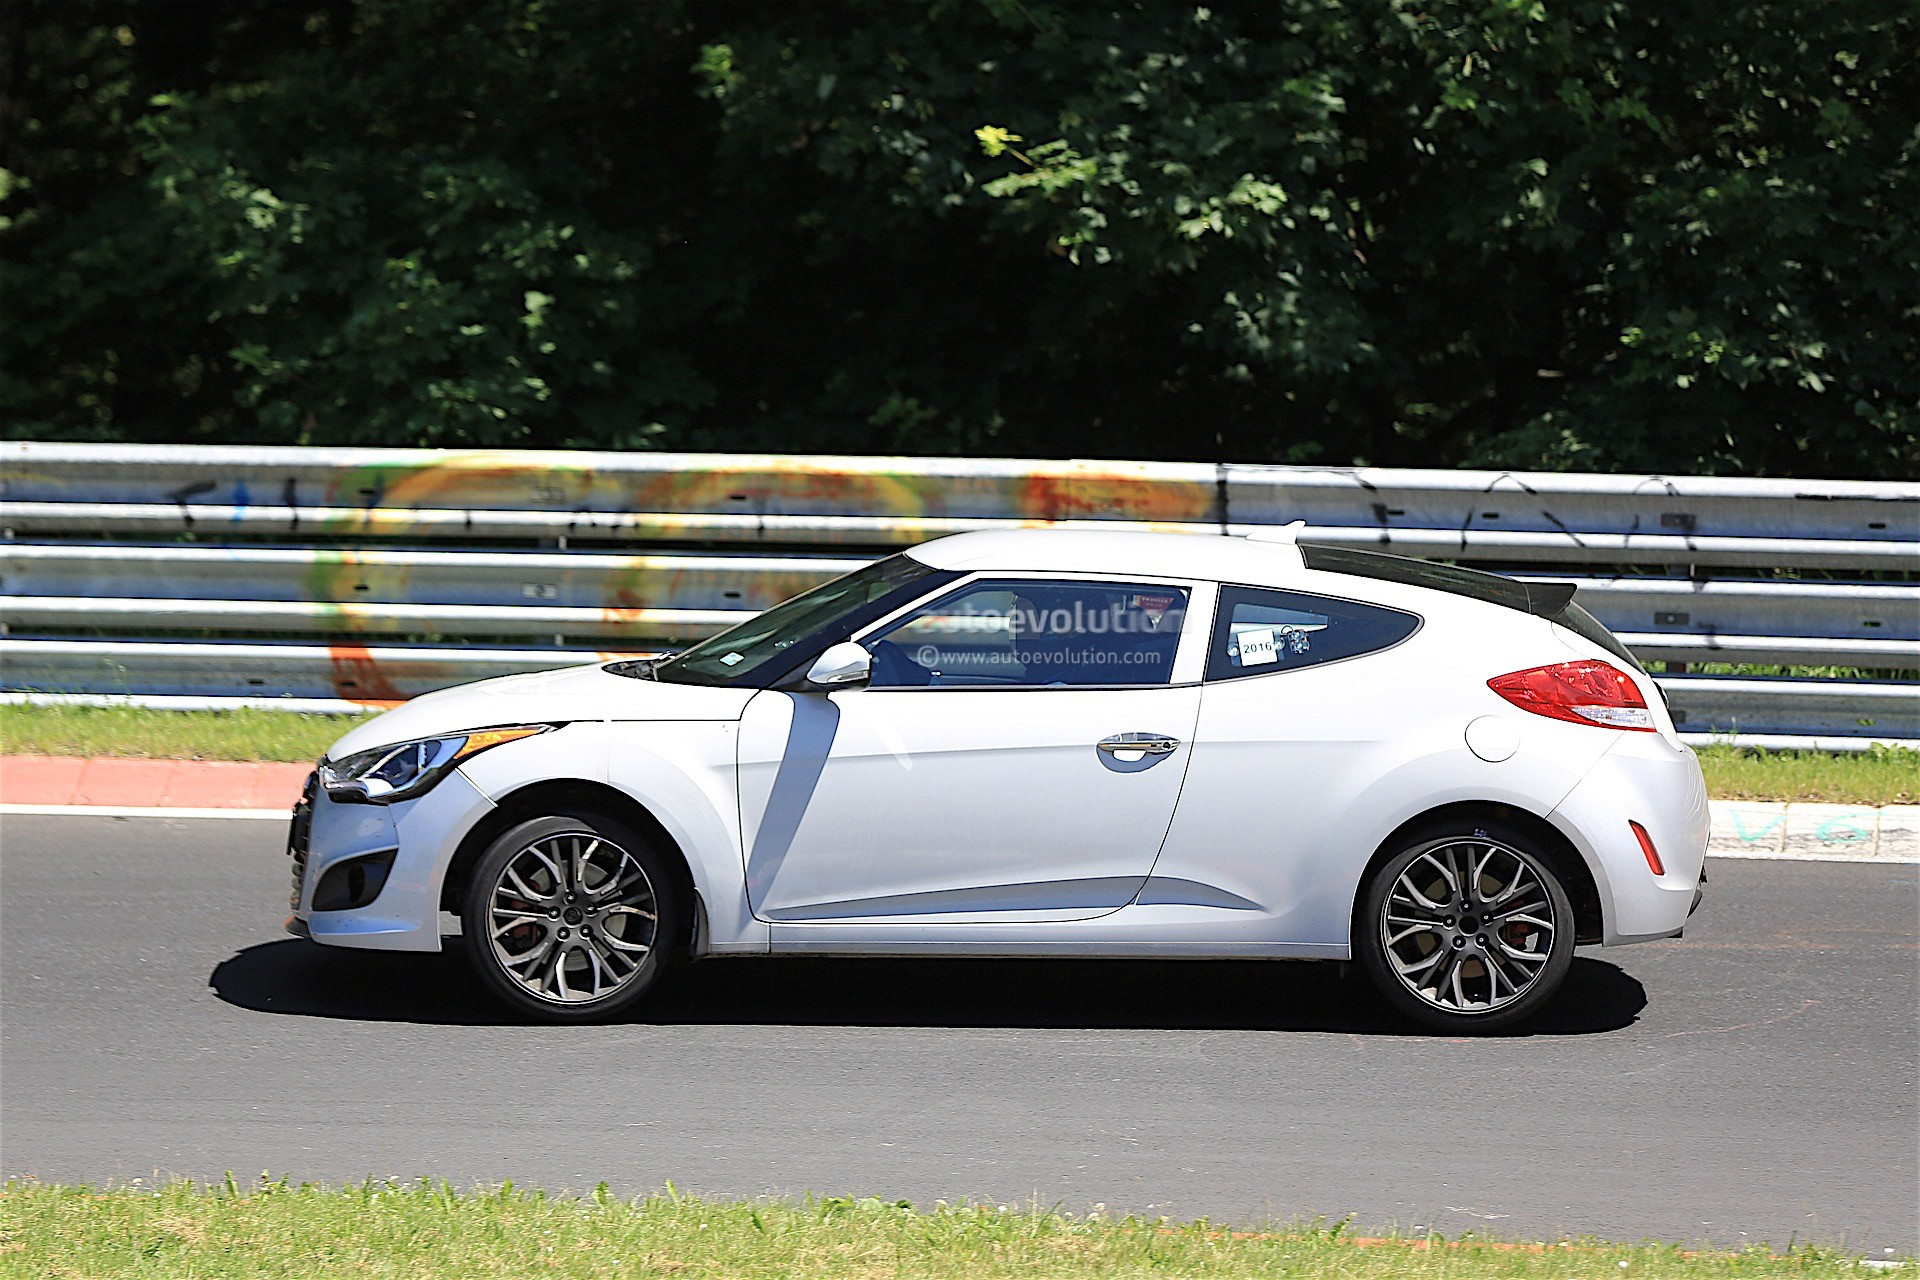 2018 Hyundai Veloster Spied Could Get Independent Rear